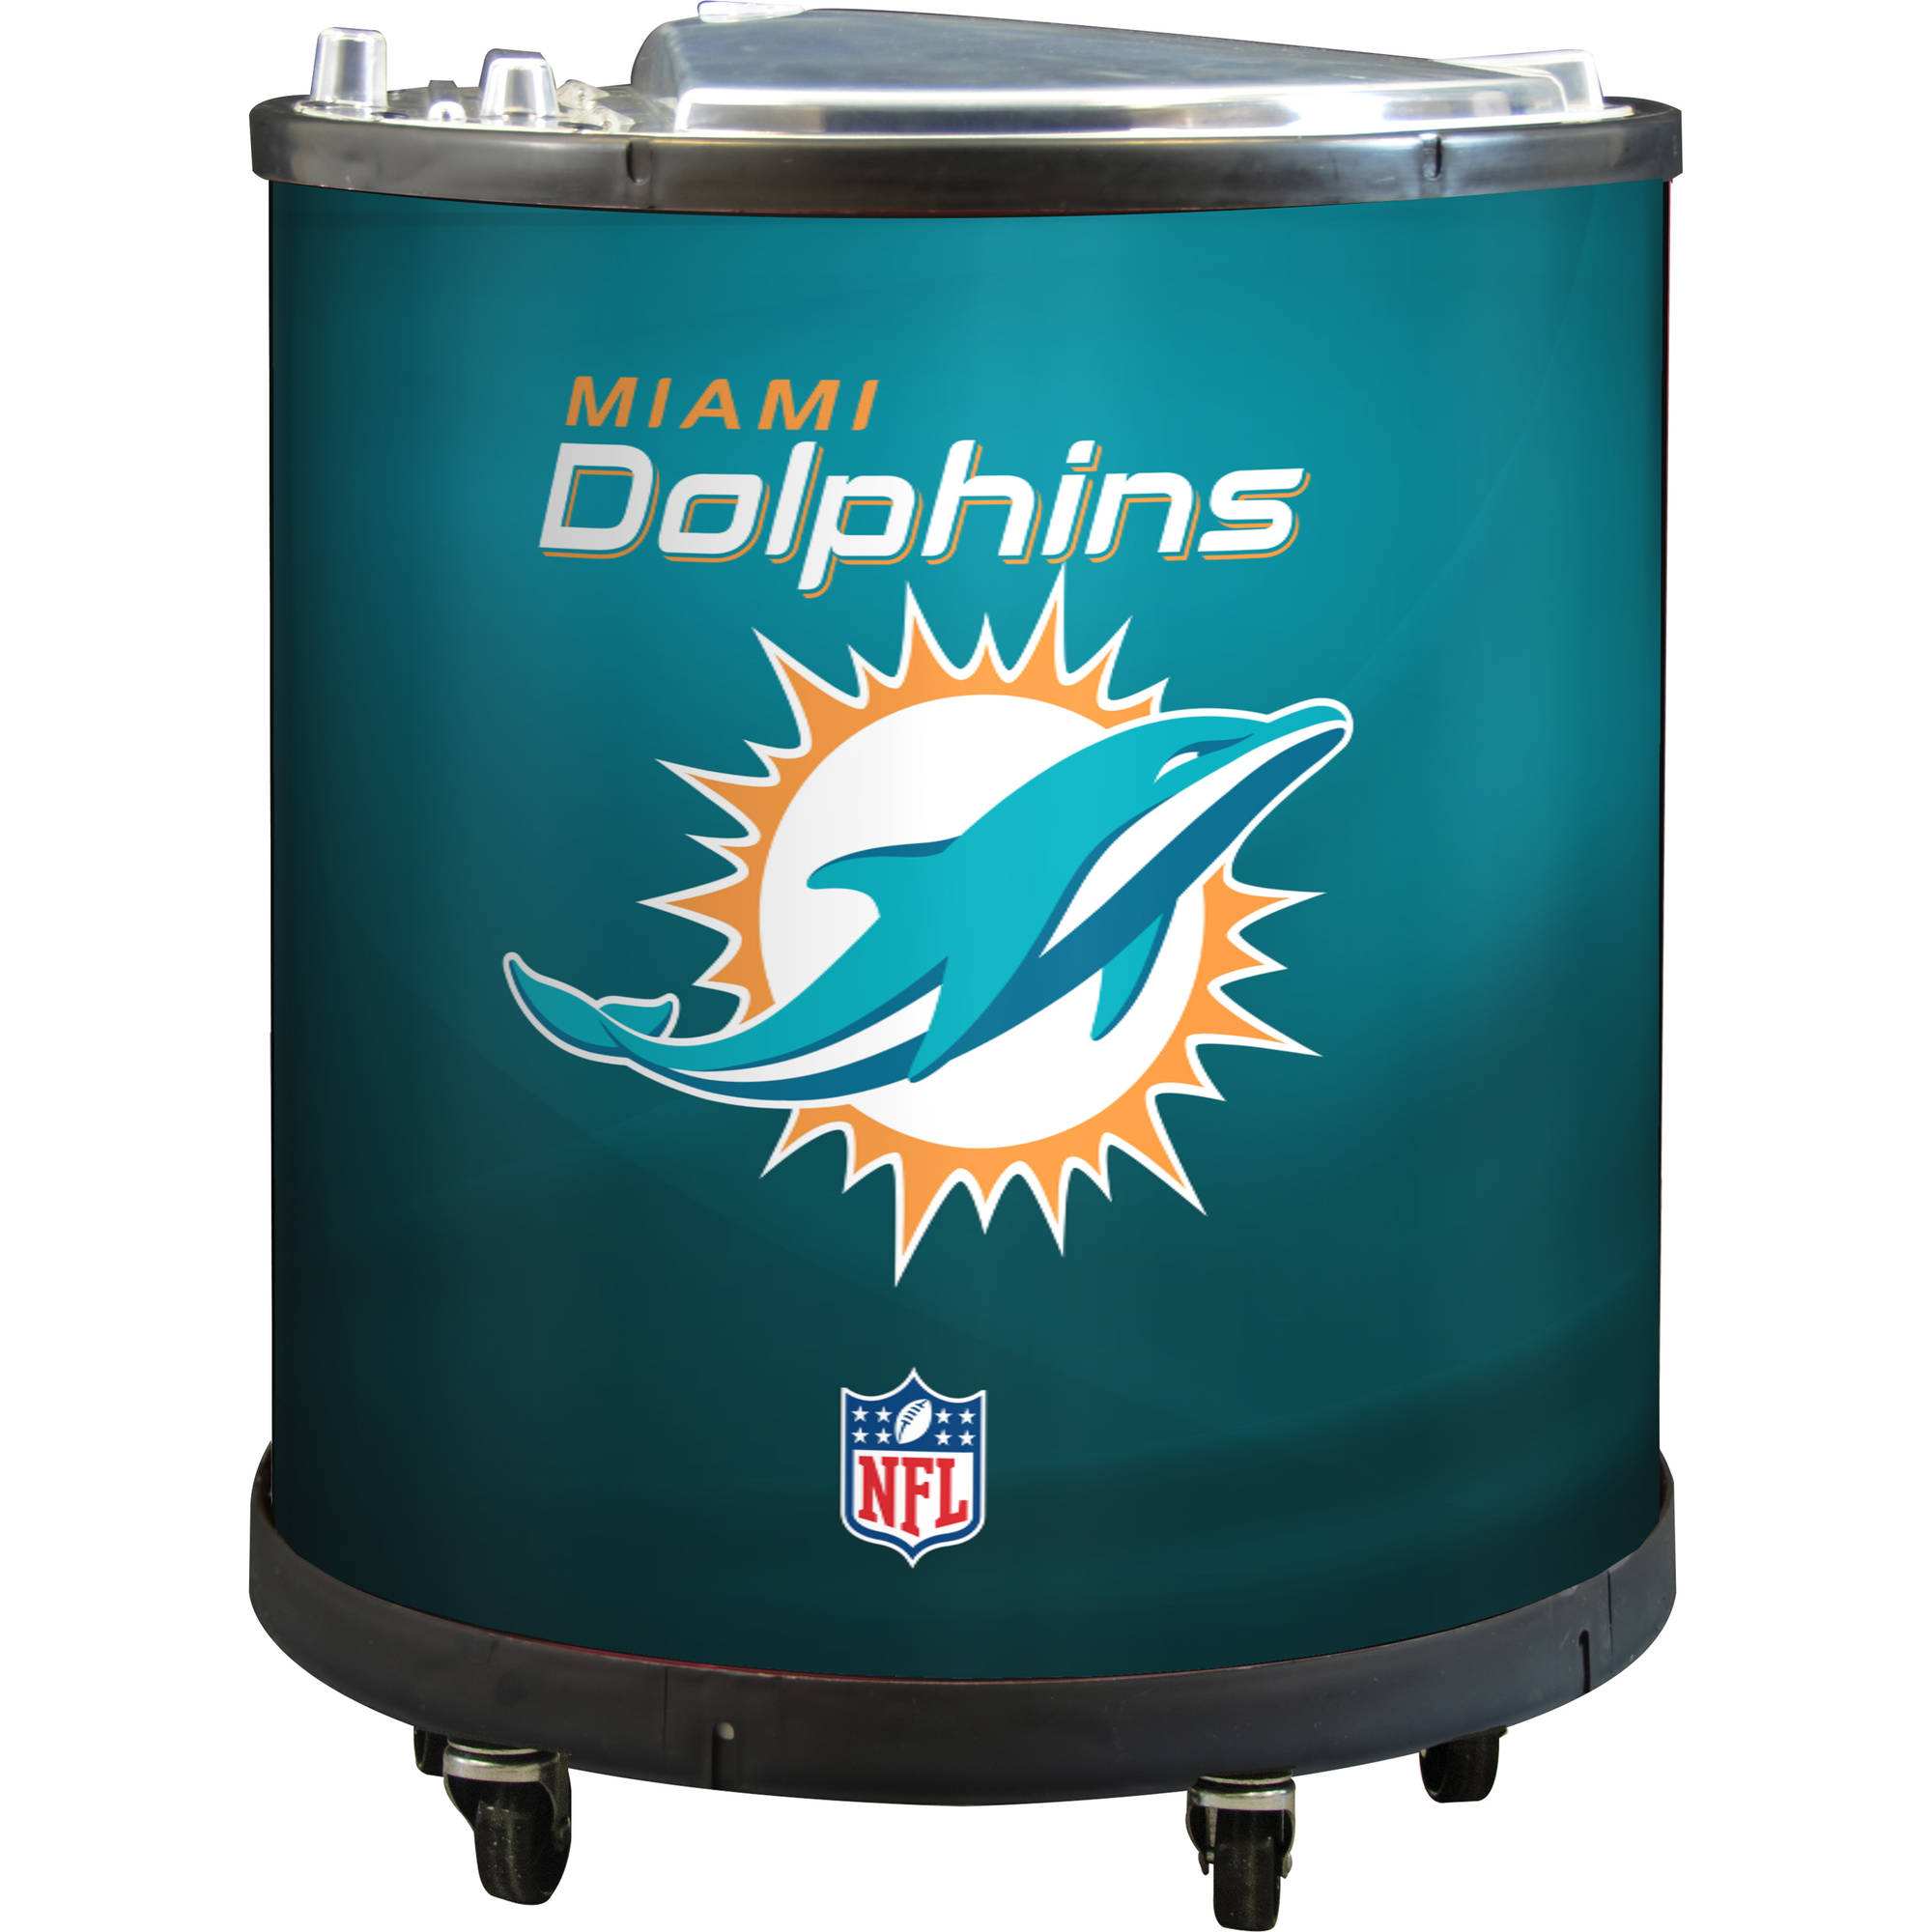 NFL Mini Ice Barrel Cooler, Miami Dolphins